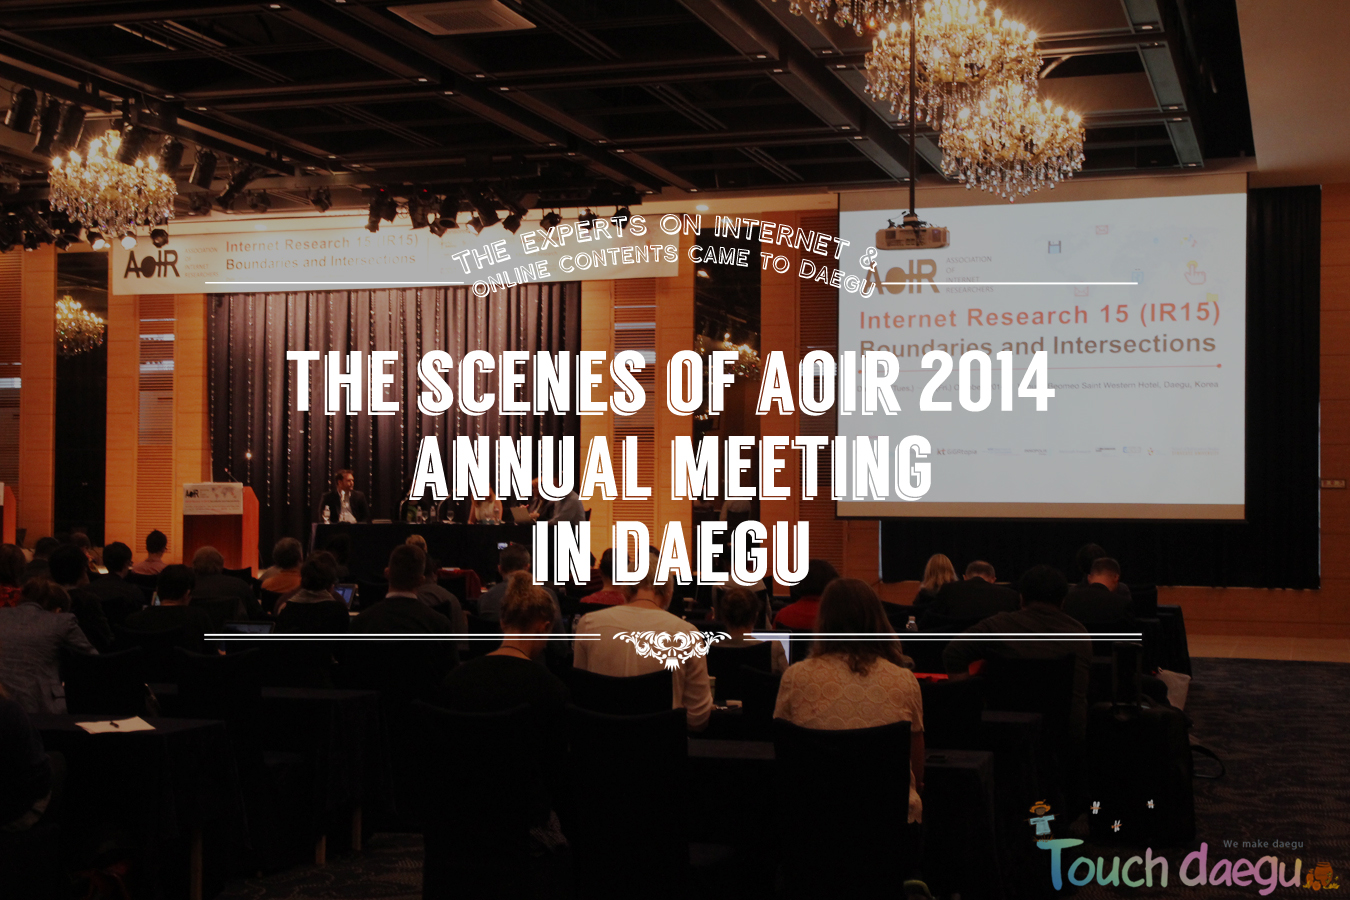 The scenes of AoIR 2014 annual meeting